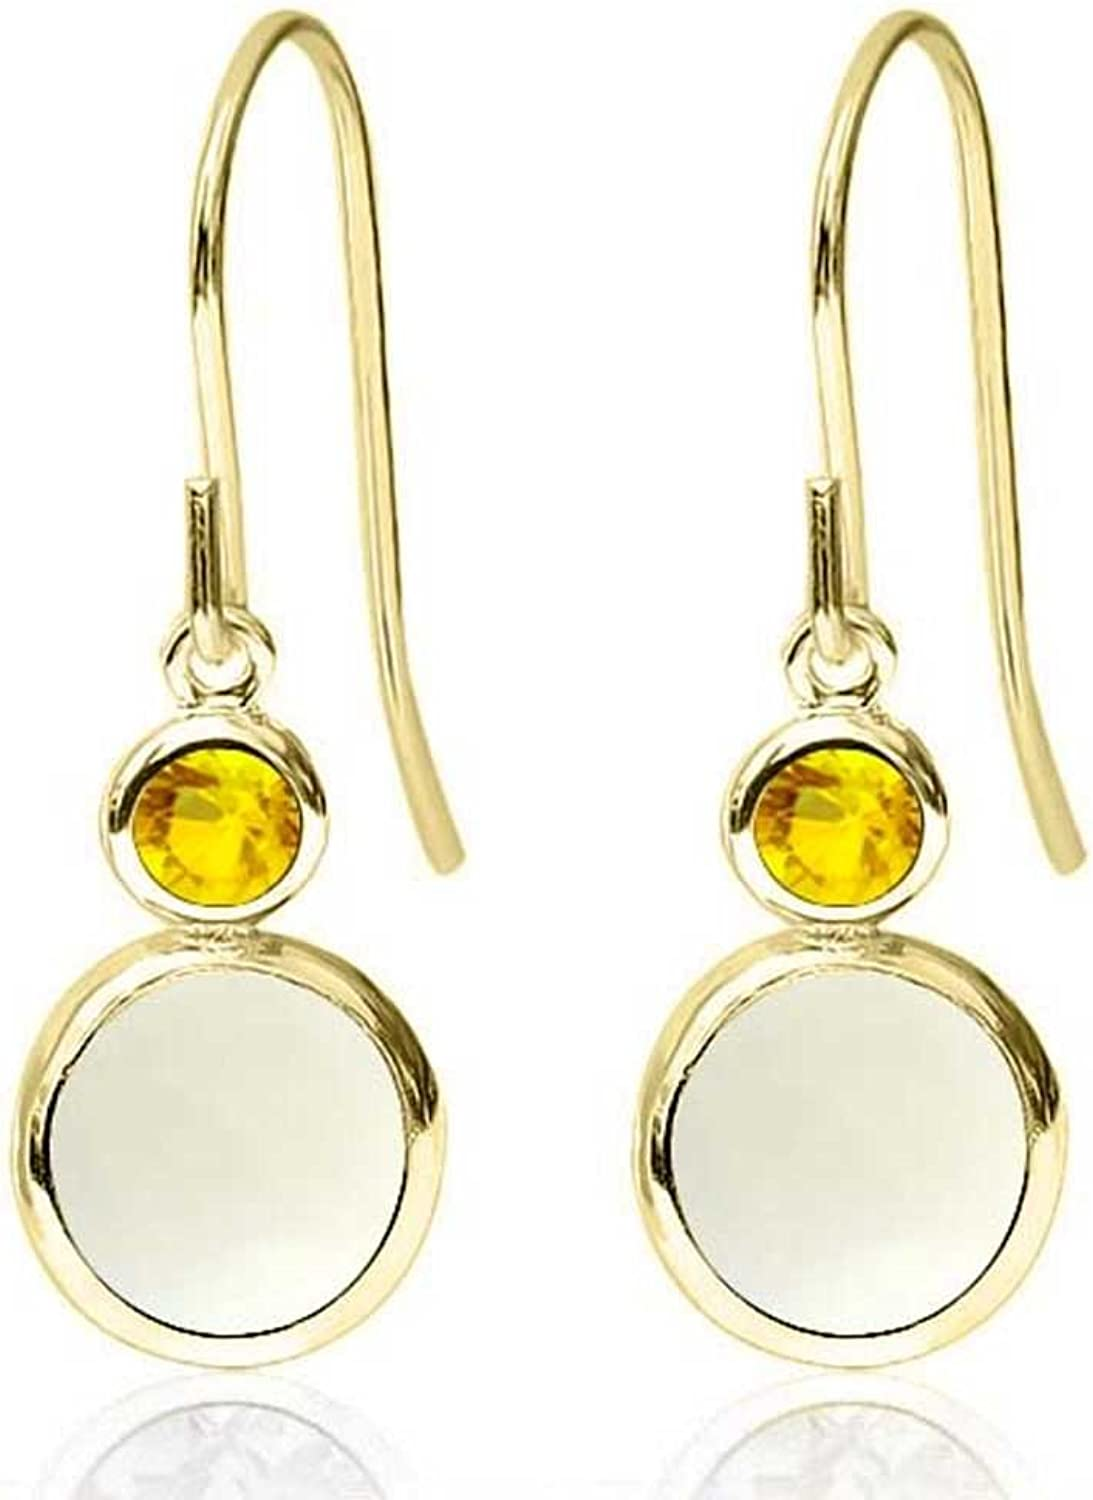 1.56 Ct Round Cabochon White Simulated Opal Yellow Sapphire 14K Yellow gold Earrings